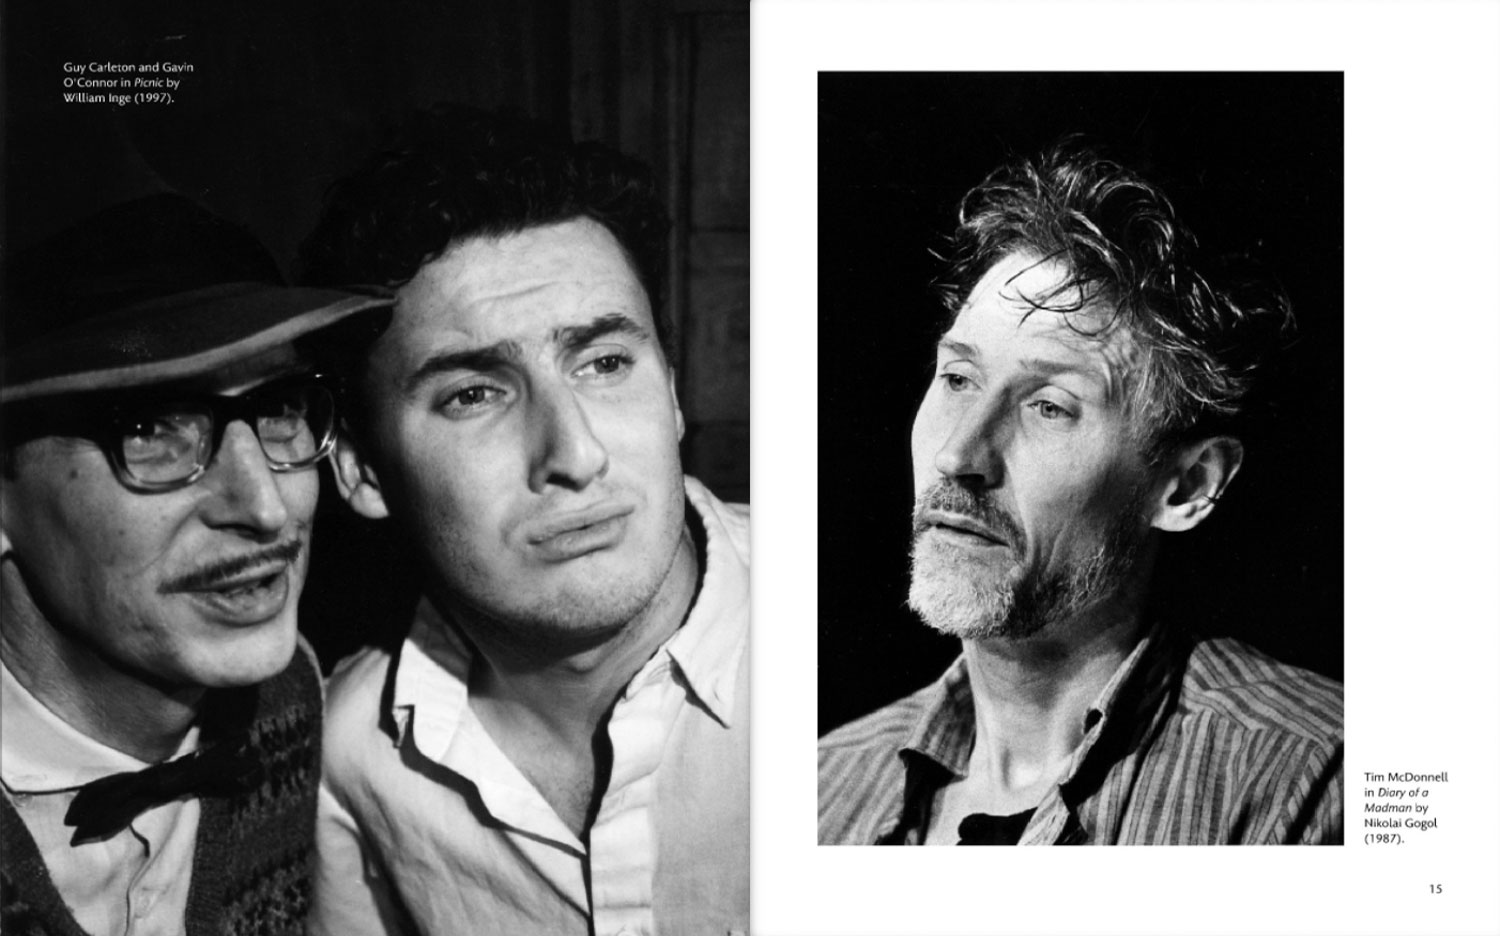 2 black and white portraits of actors in 1990s looking soulful - review